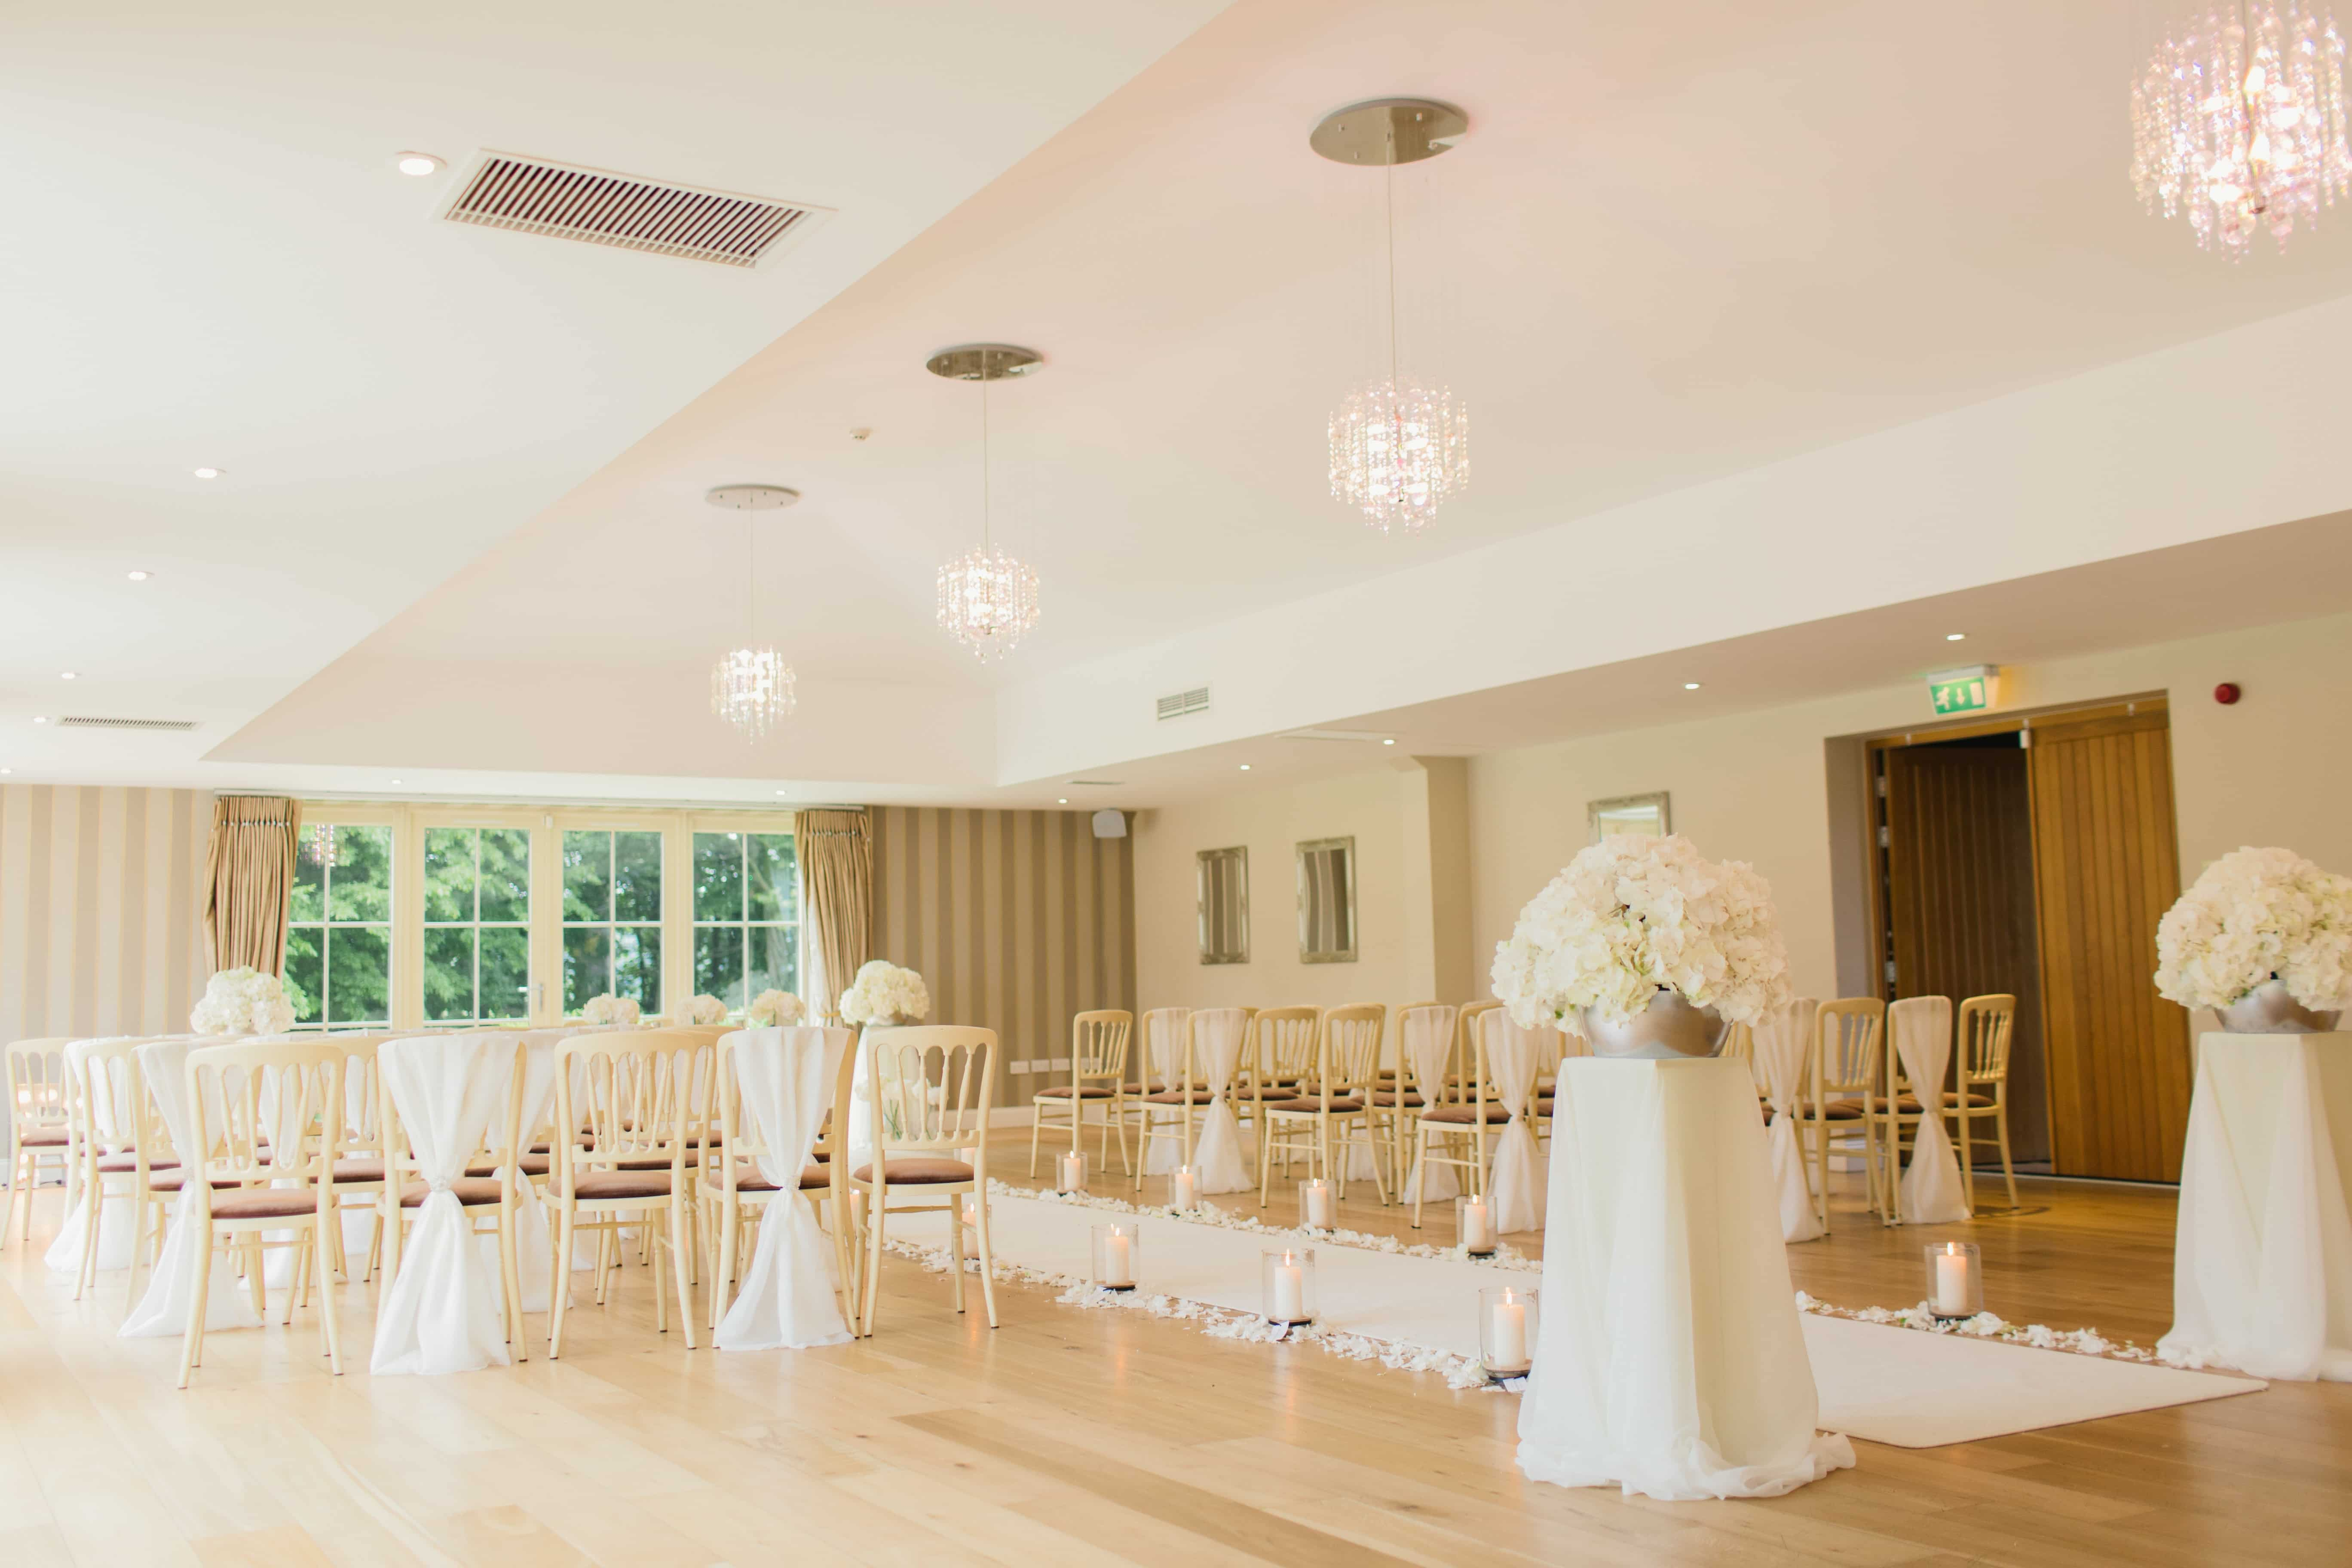 Important wedding venue questions to ask